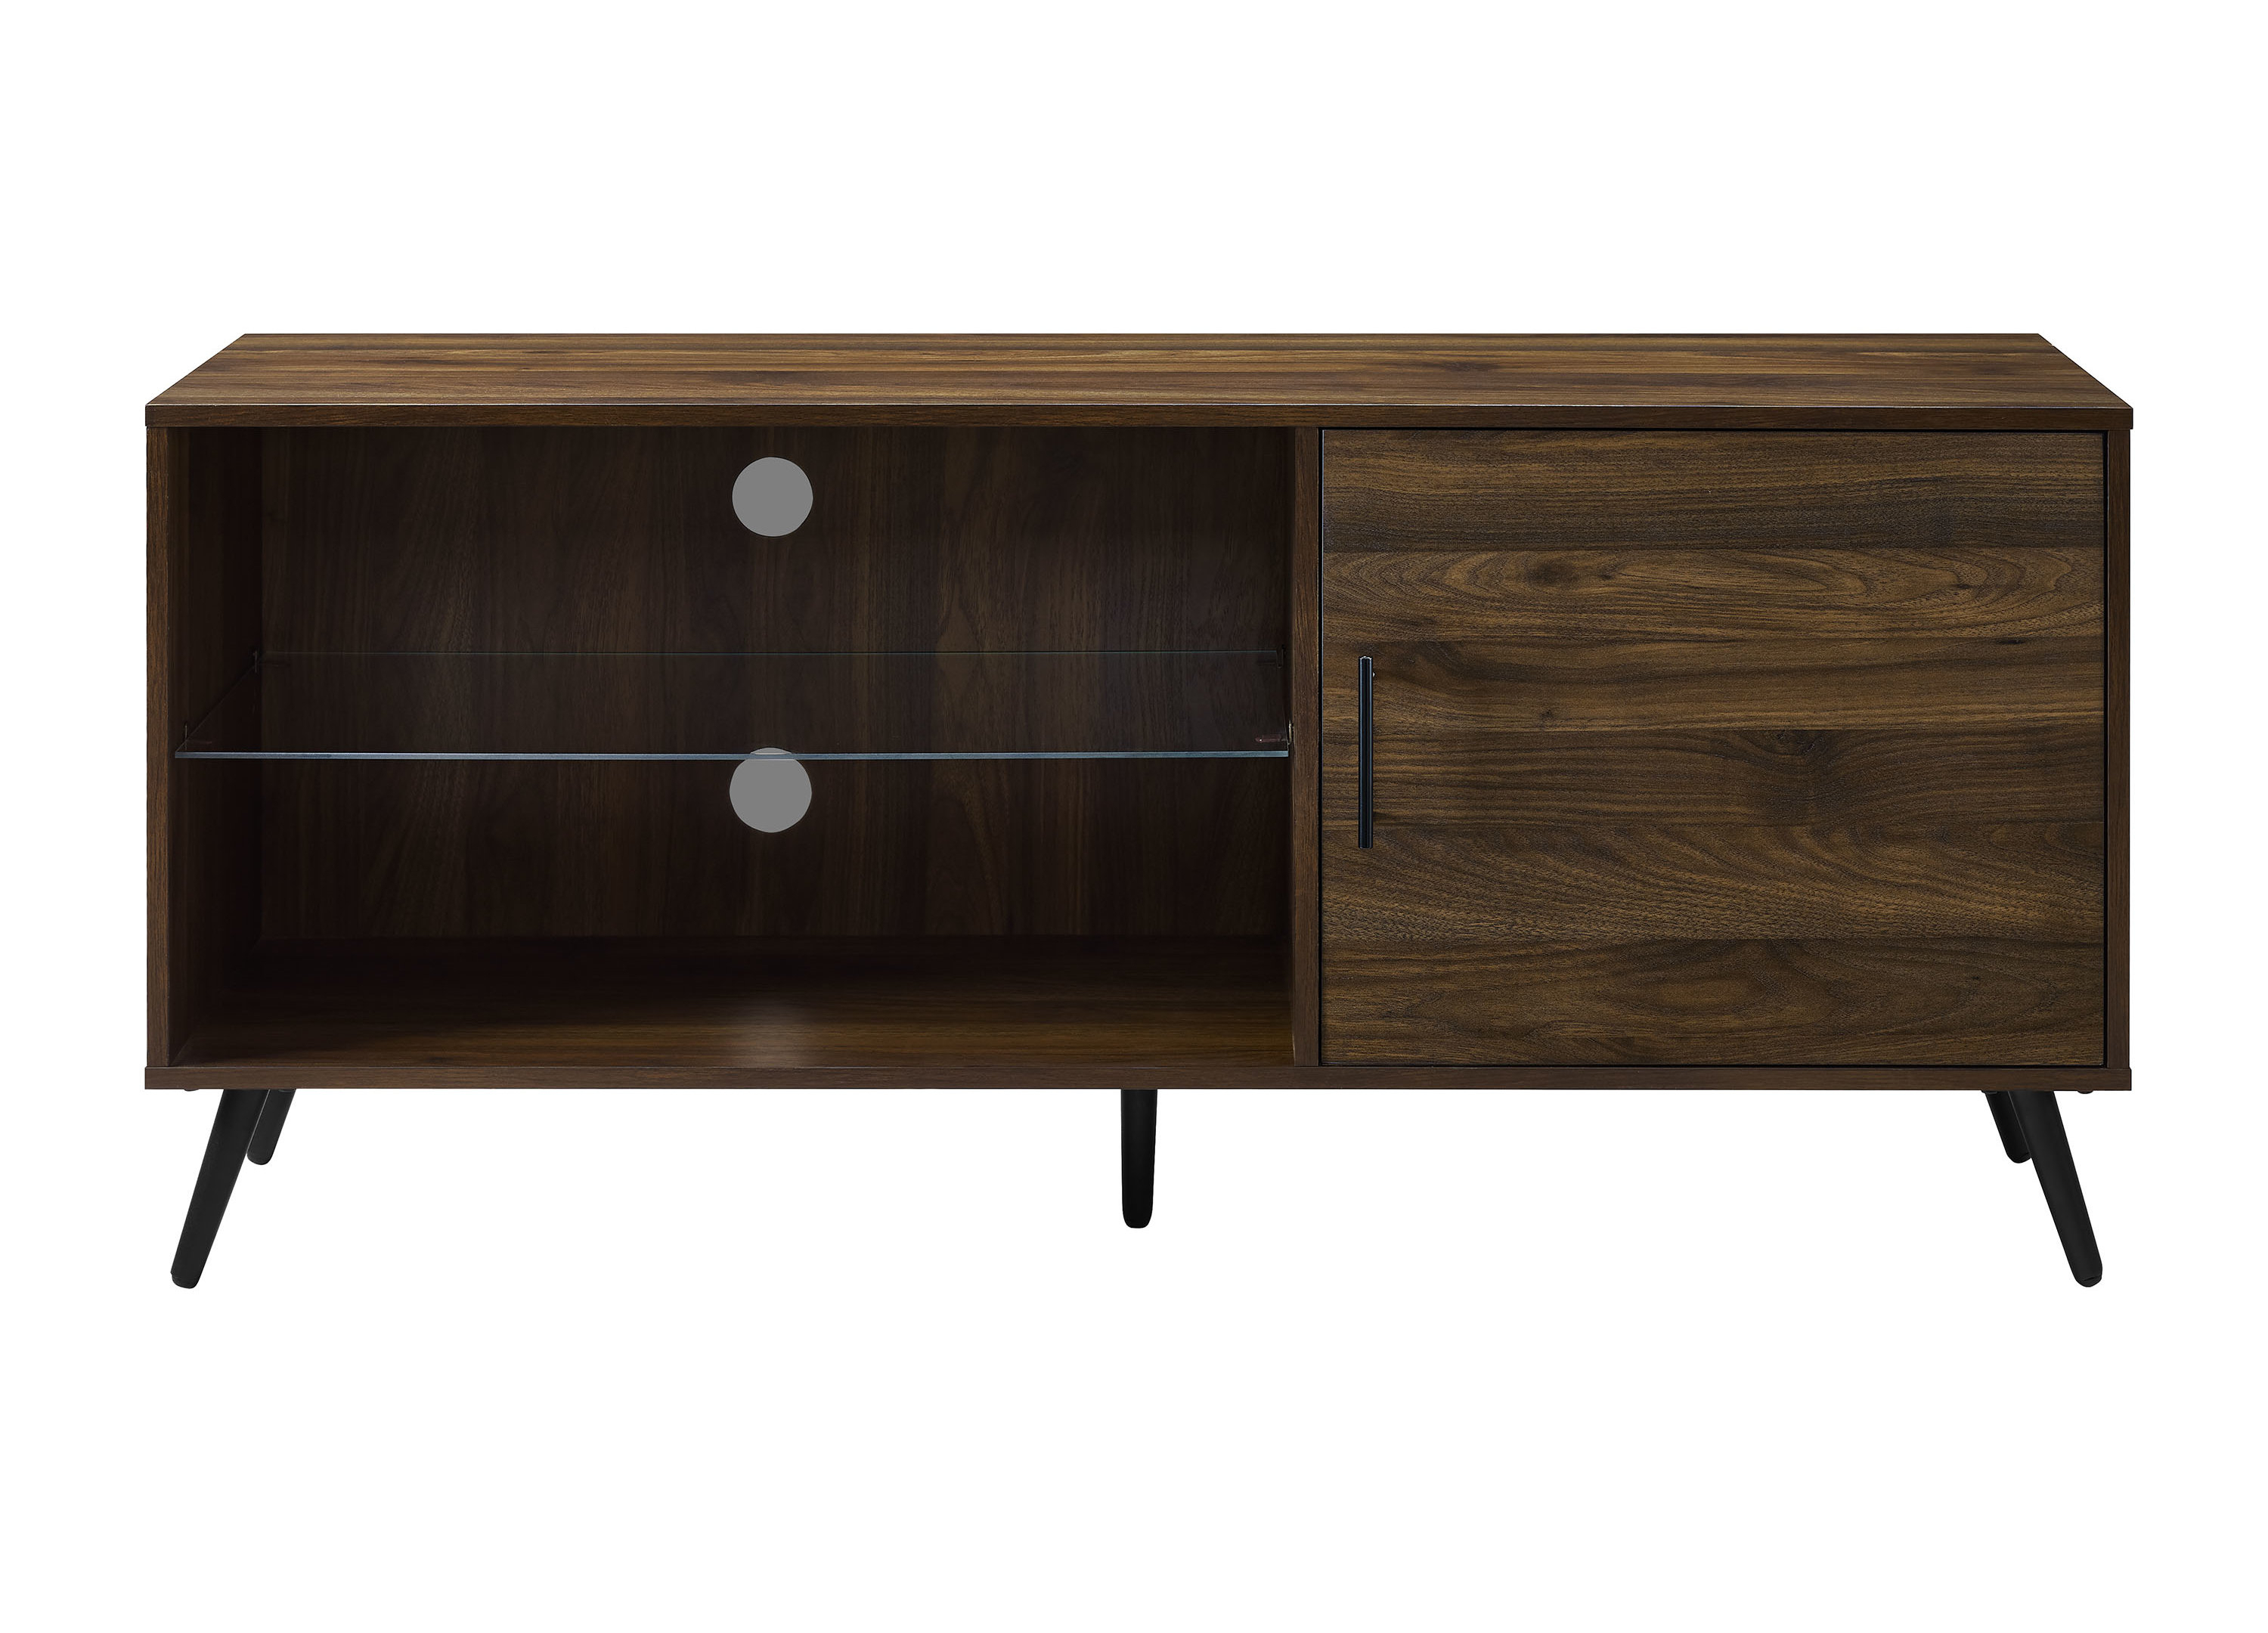 Fancy Tv Cabinets Regarding Fashionable Modern Tv Stands & Entertainment Centers (View 11 of 20)